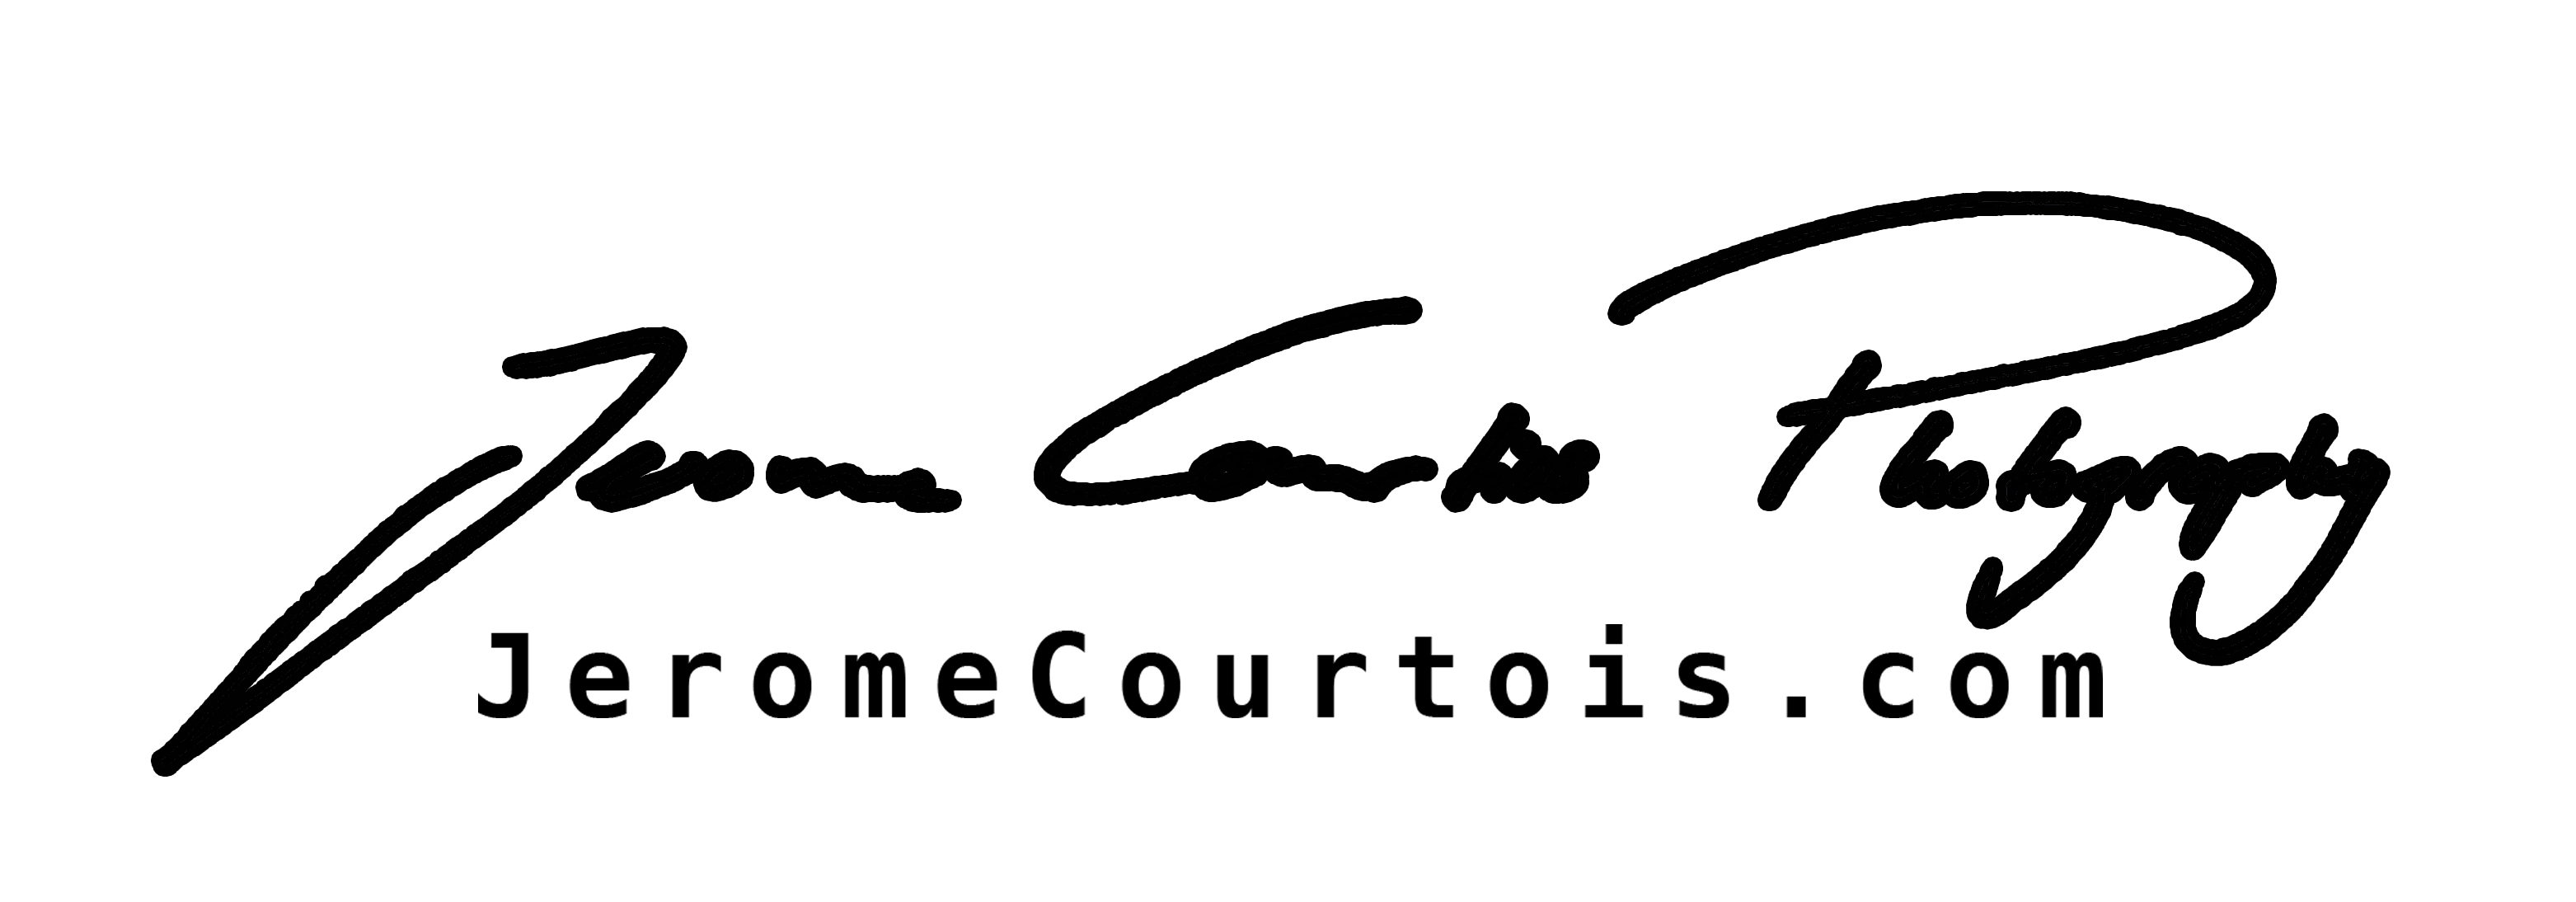 Jerome Courtois